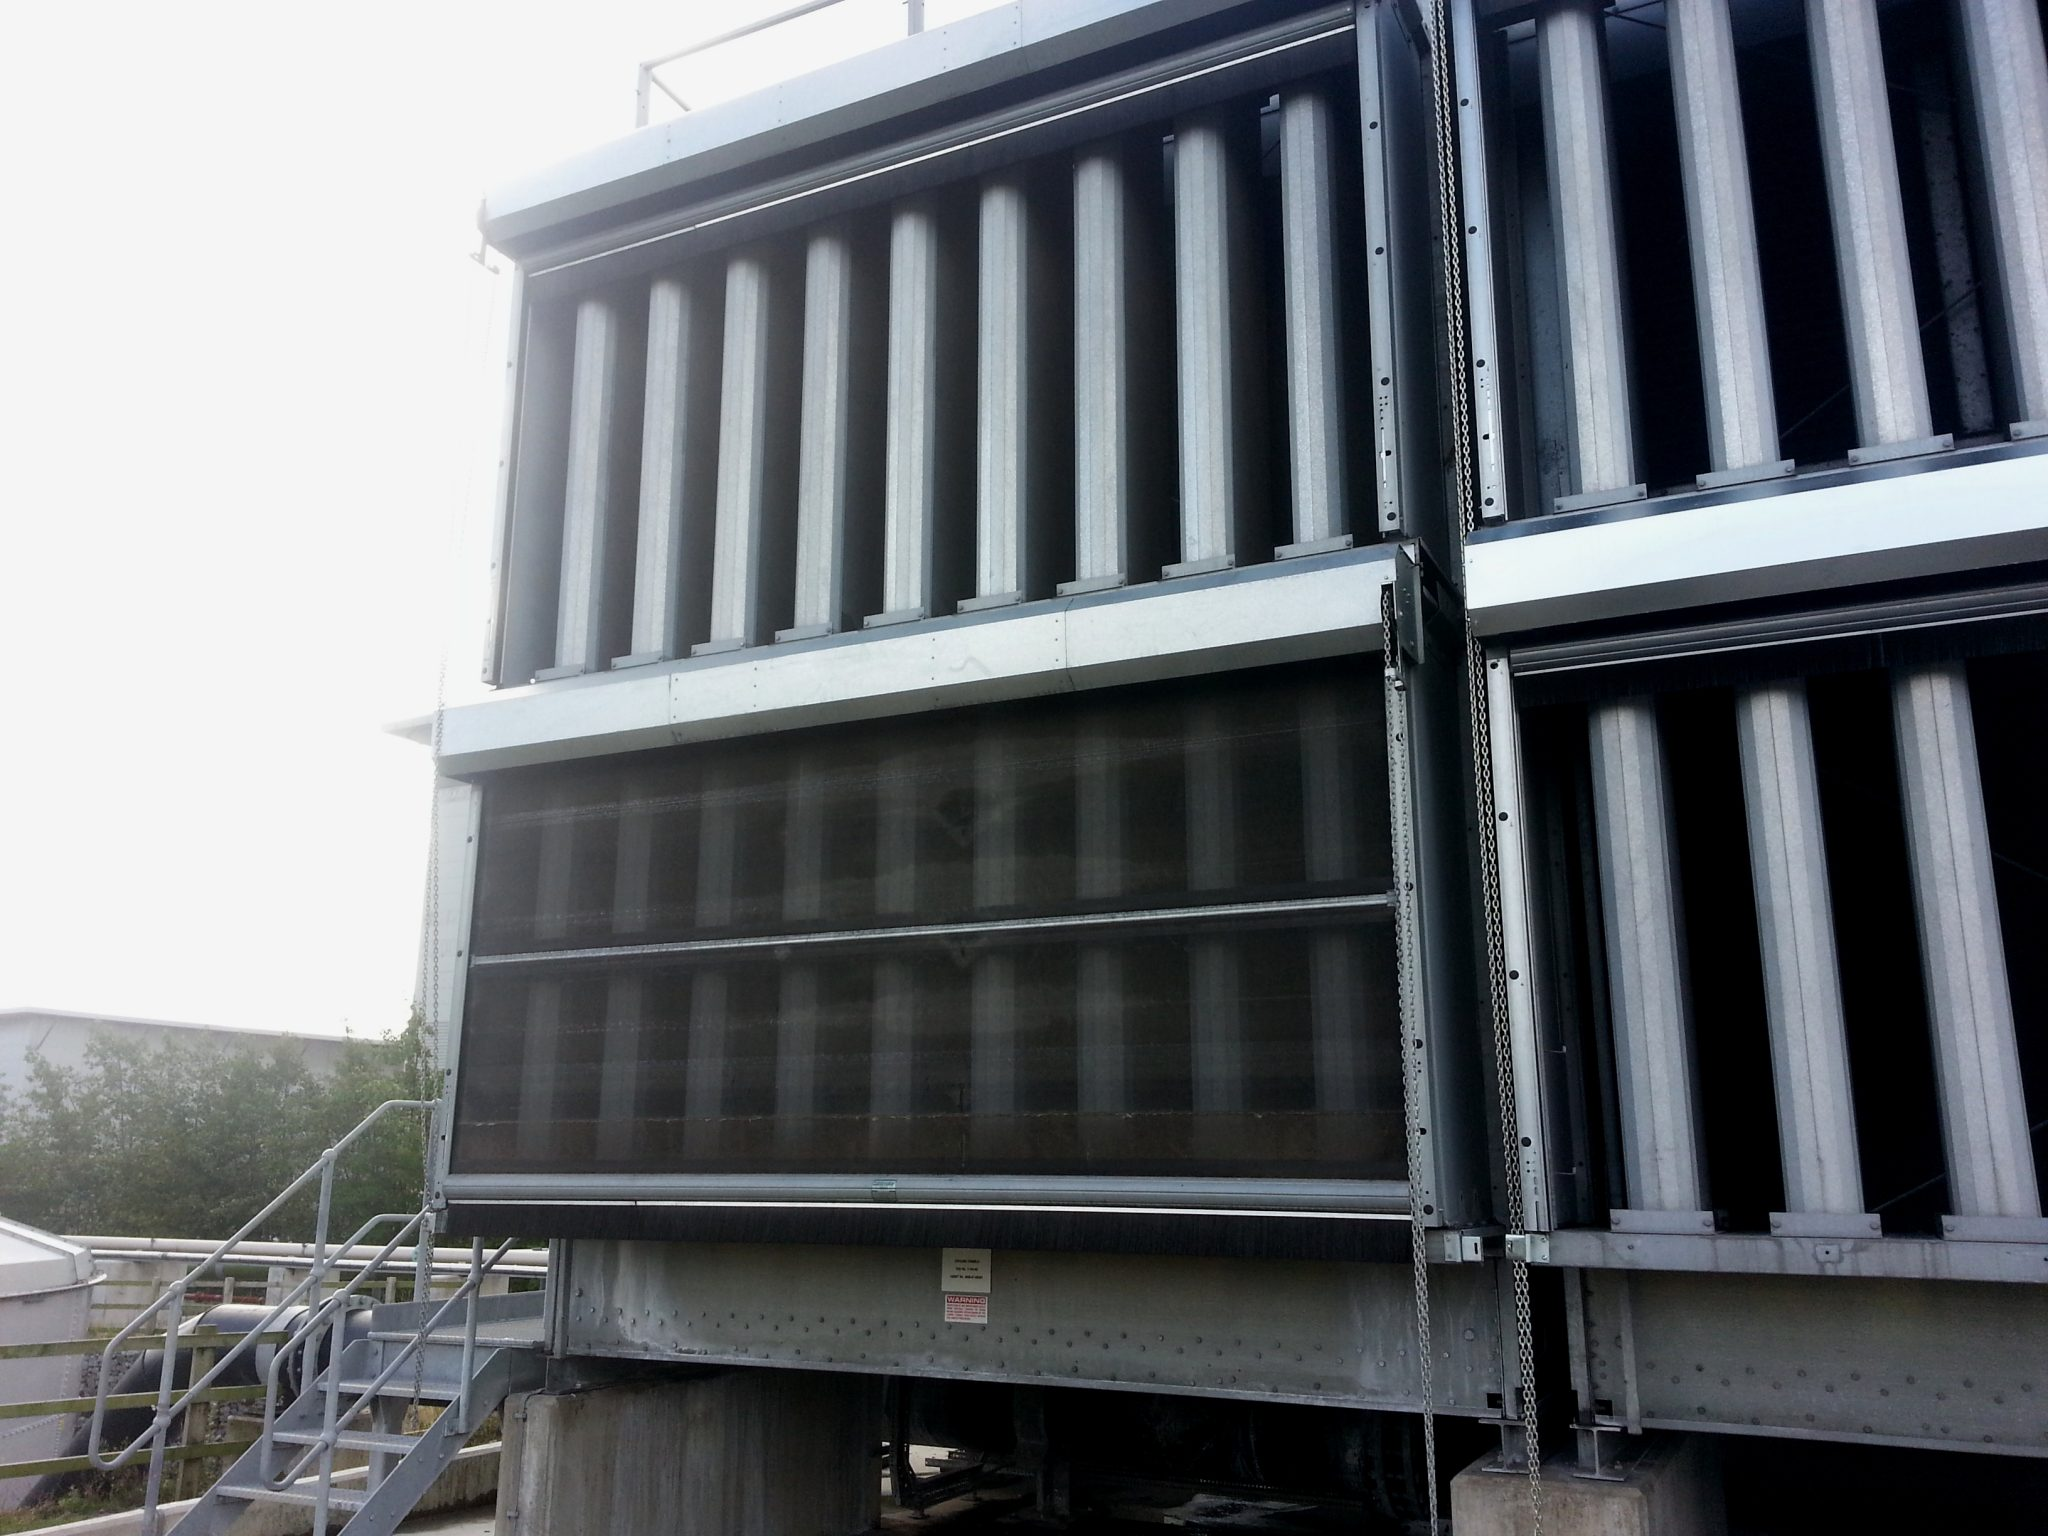 evaporative cooling tower exterior